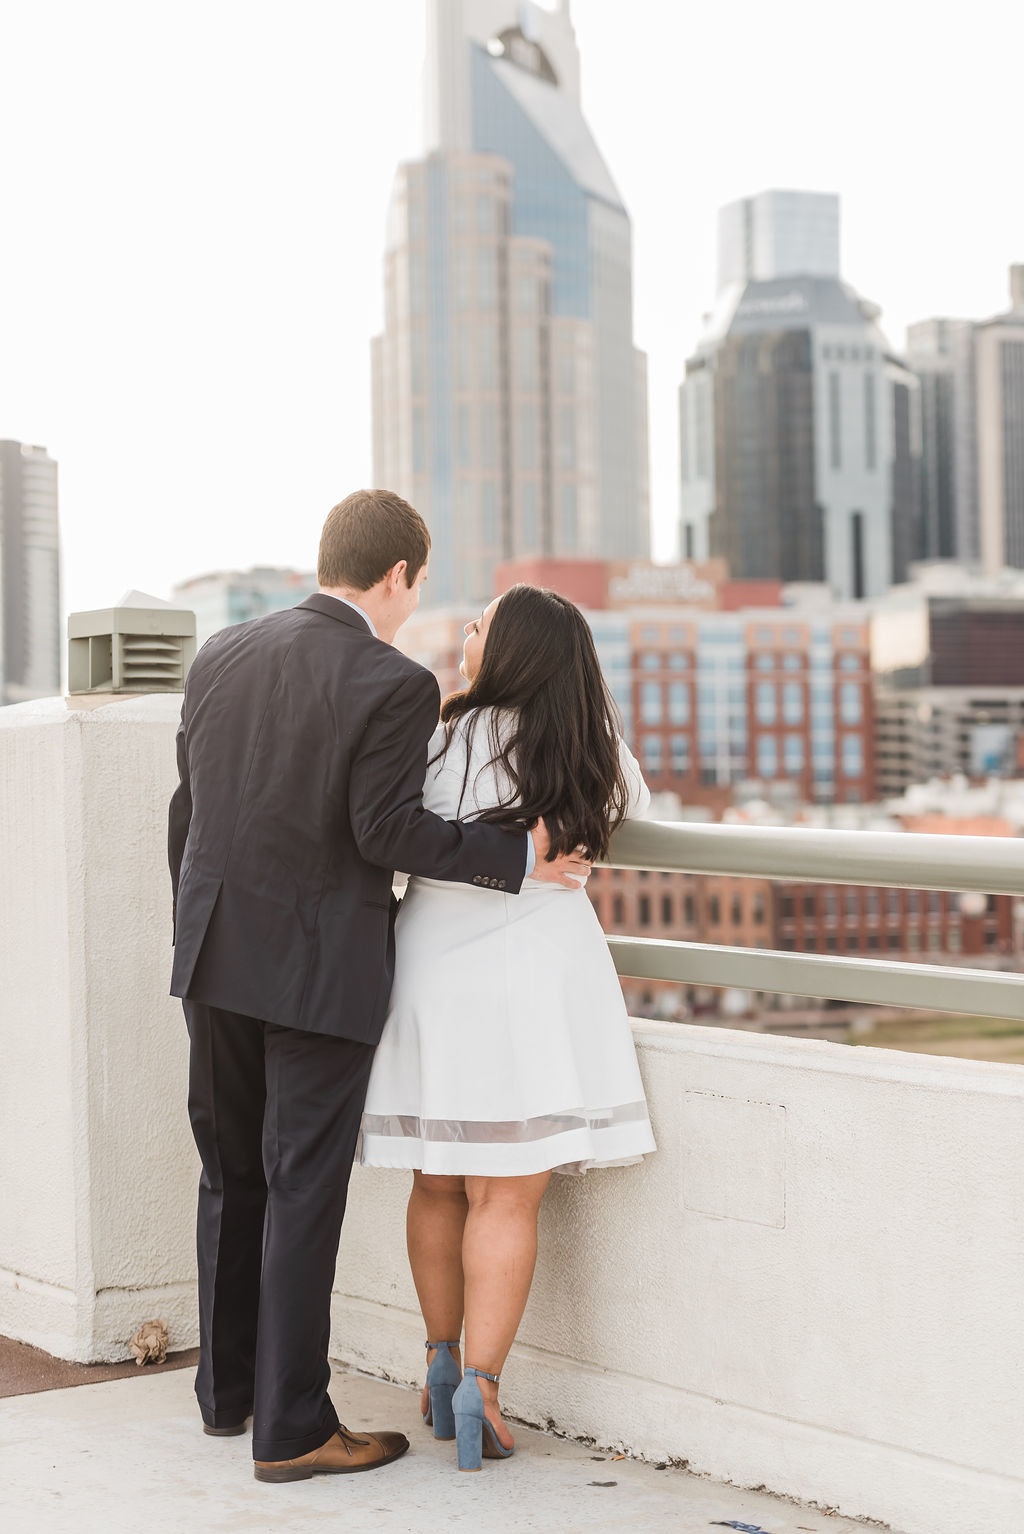 69downtownnashvilleengagement